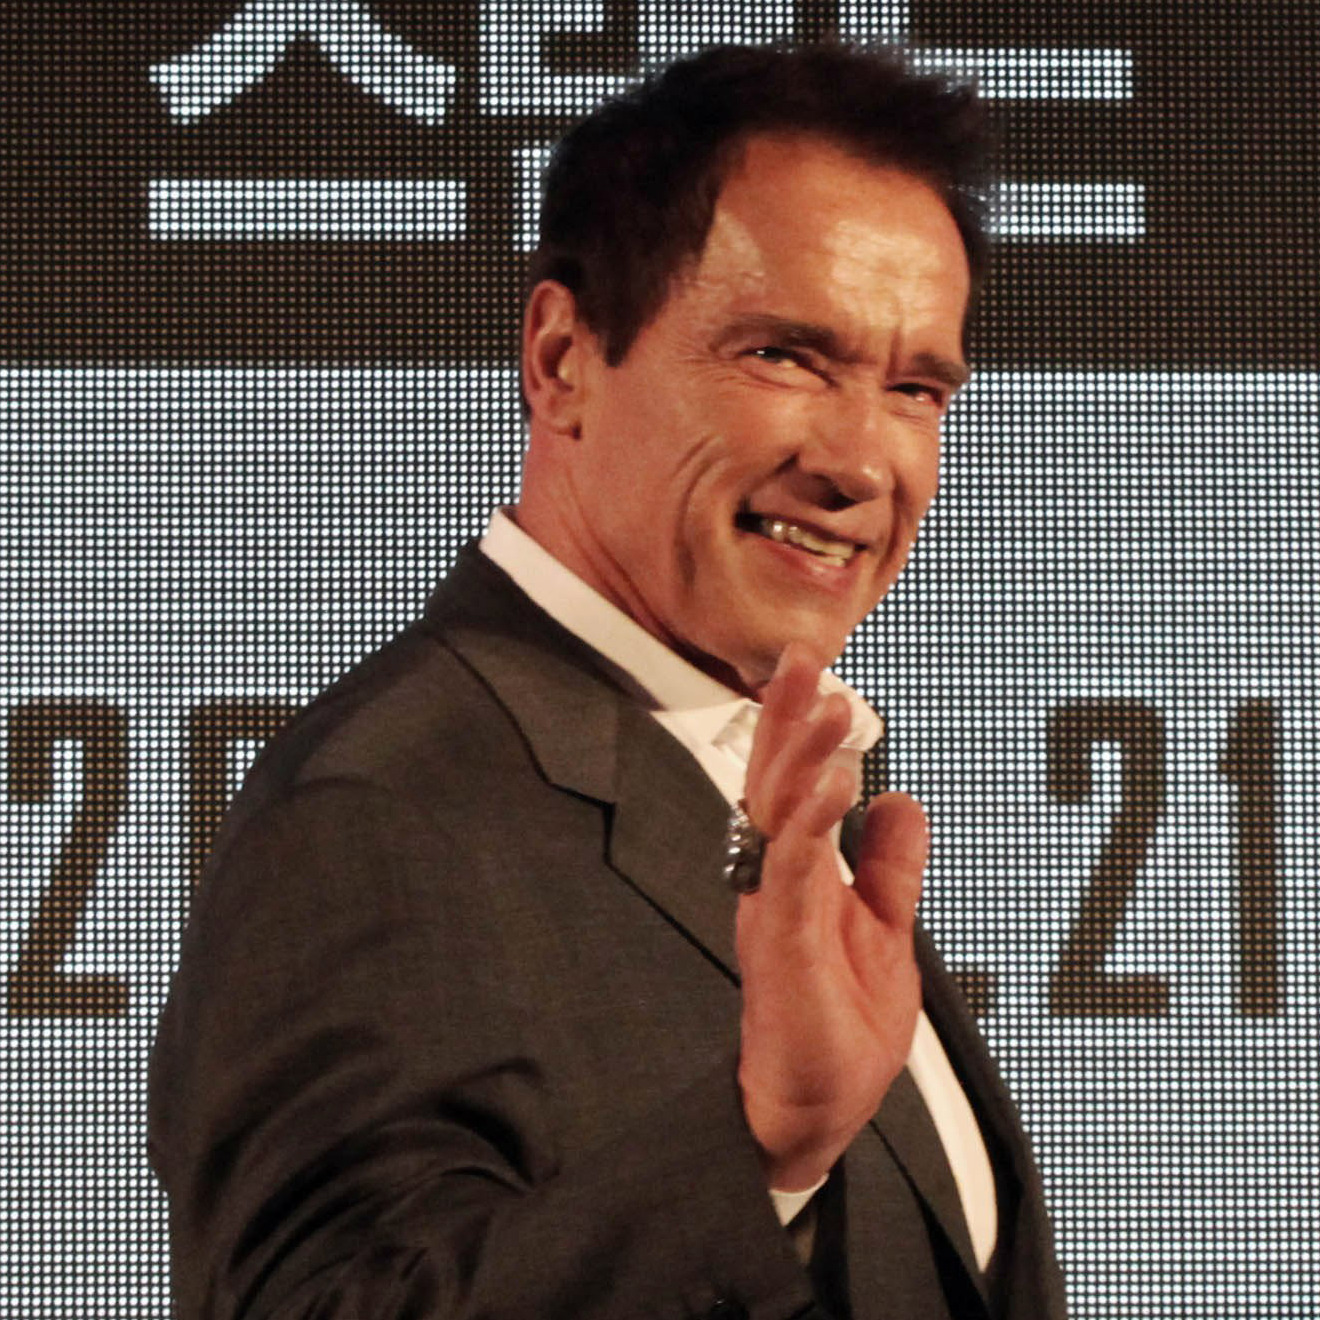 Arnold Schwarzenegger's political career had already tanked before he admitted to fathering a child out of wedlock. Now he's making movies such as The Last Stand.